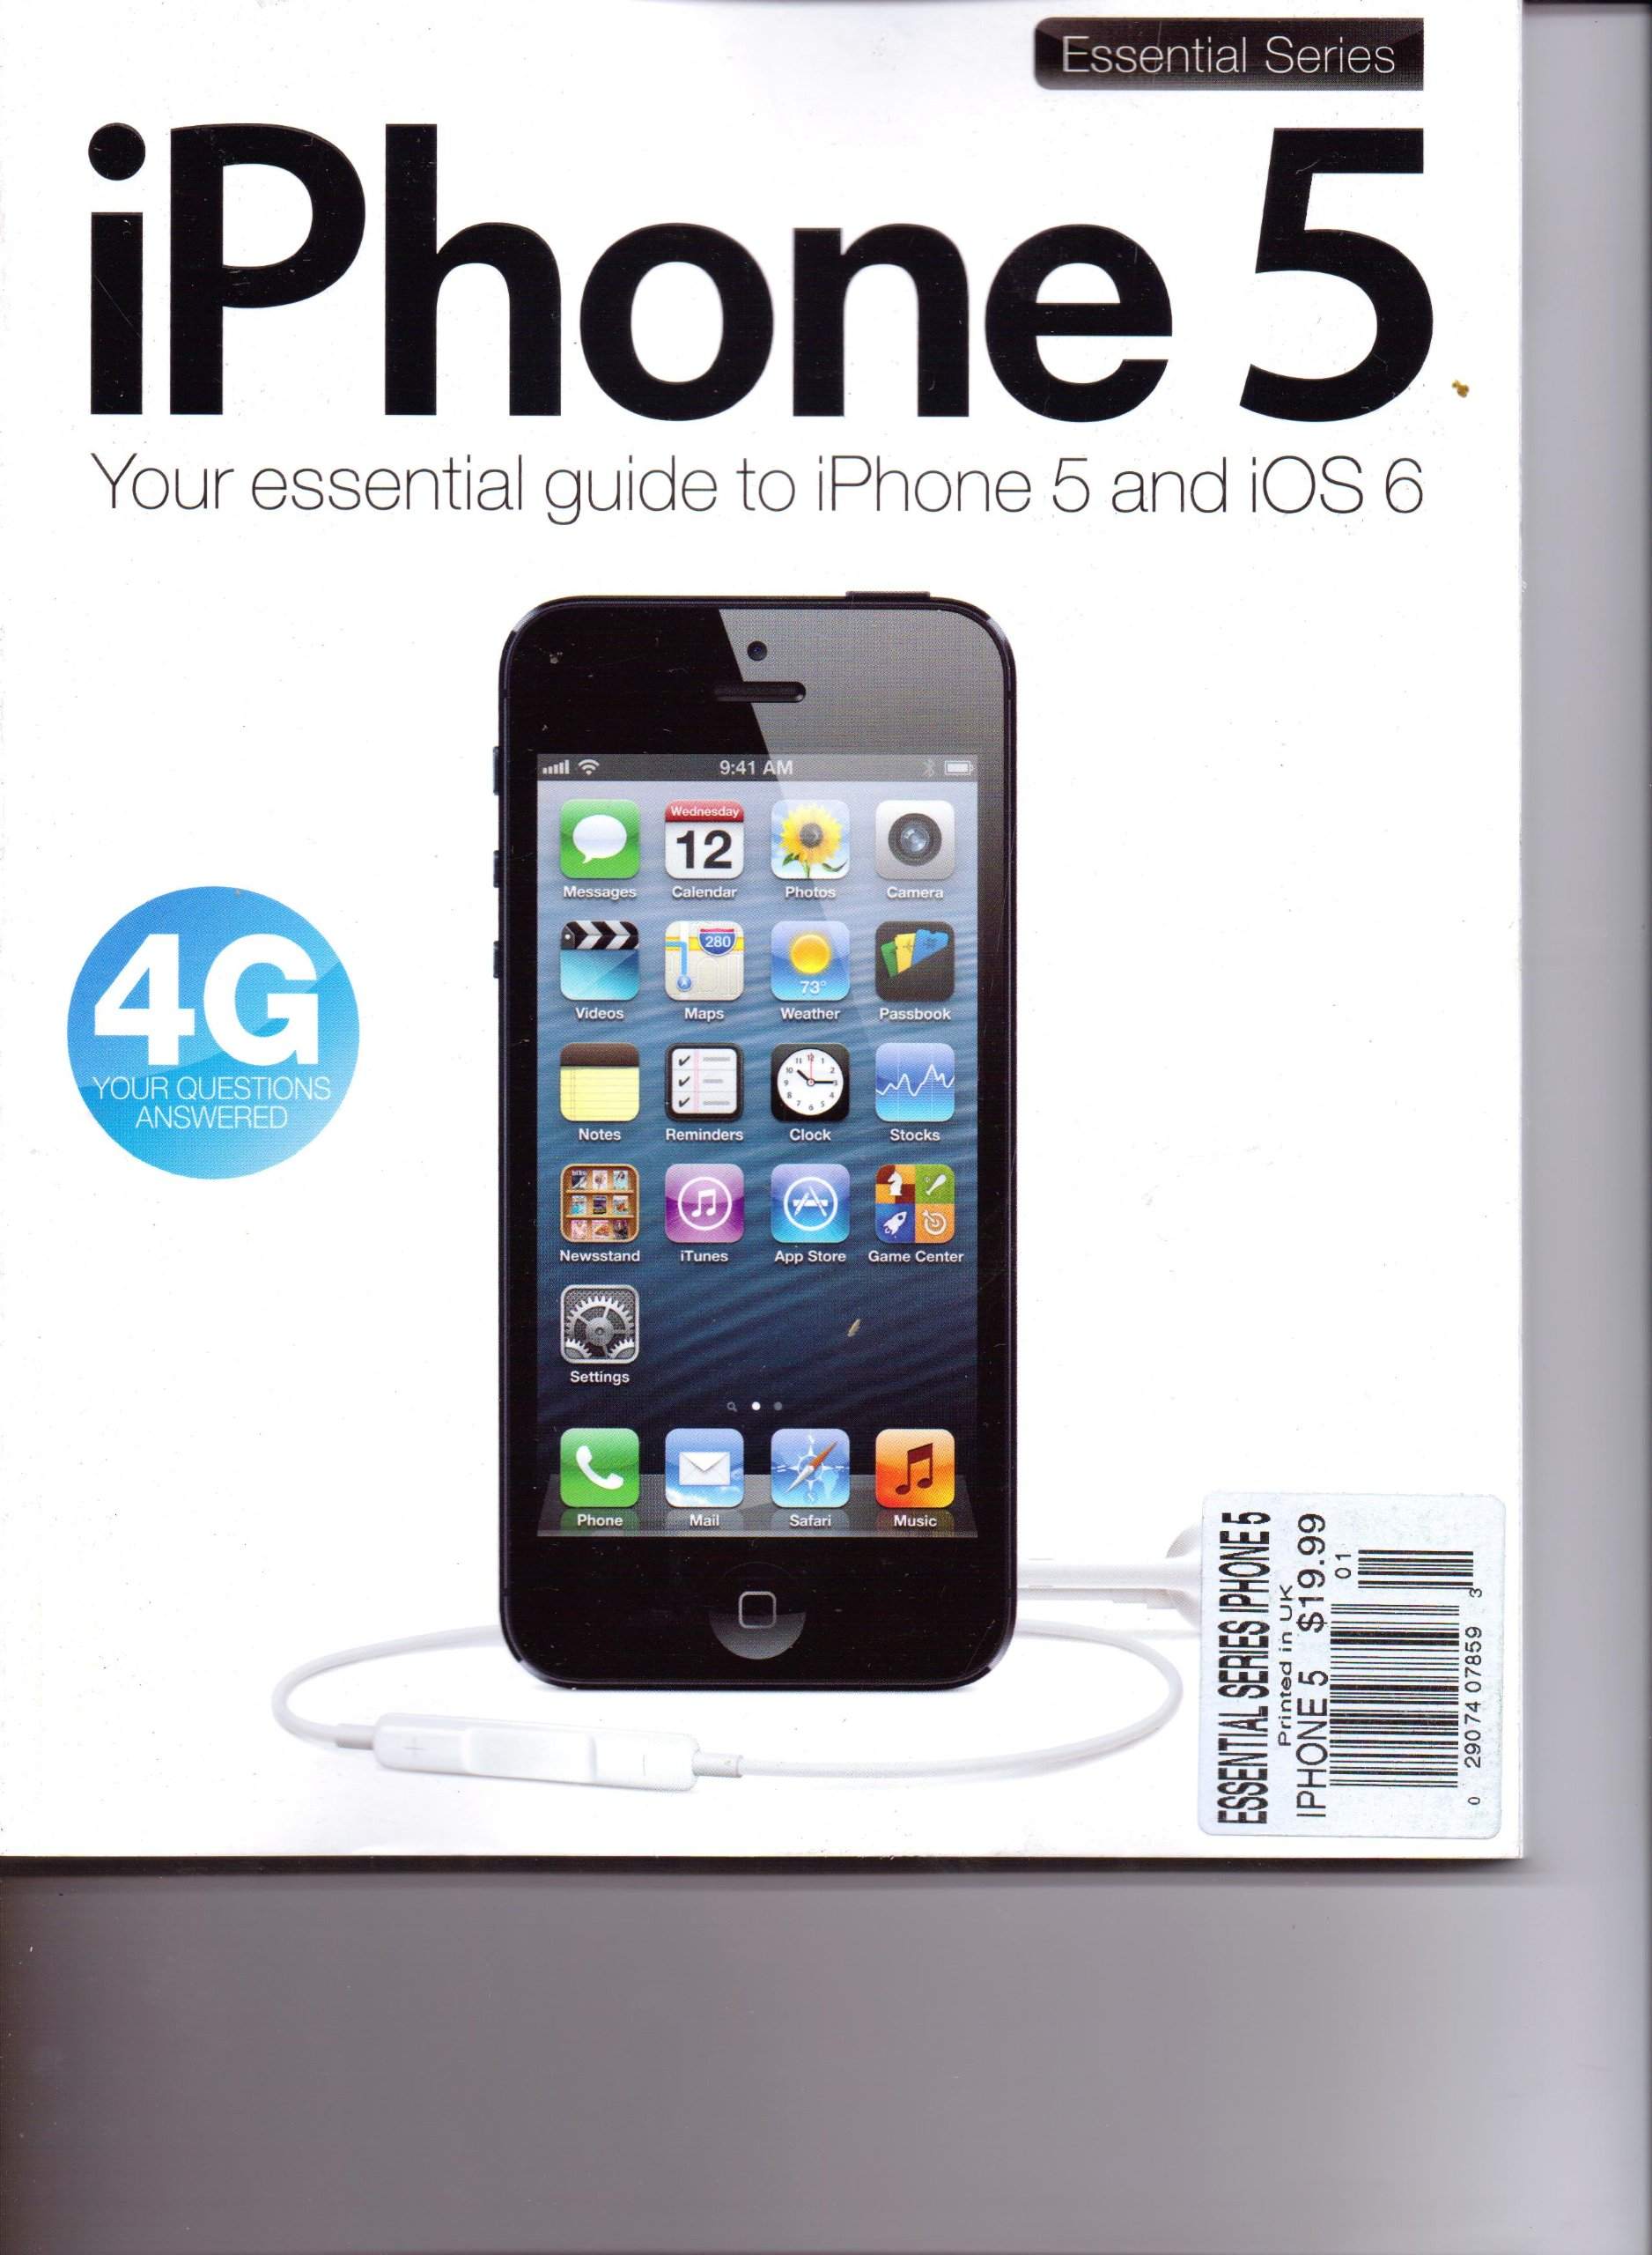 iphone-5-magazine-your-essential-guide-to-iphone-5-ios-6-2012